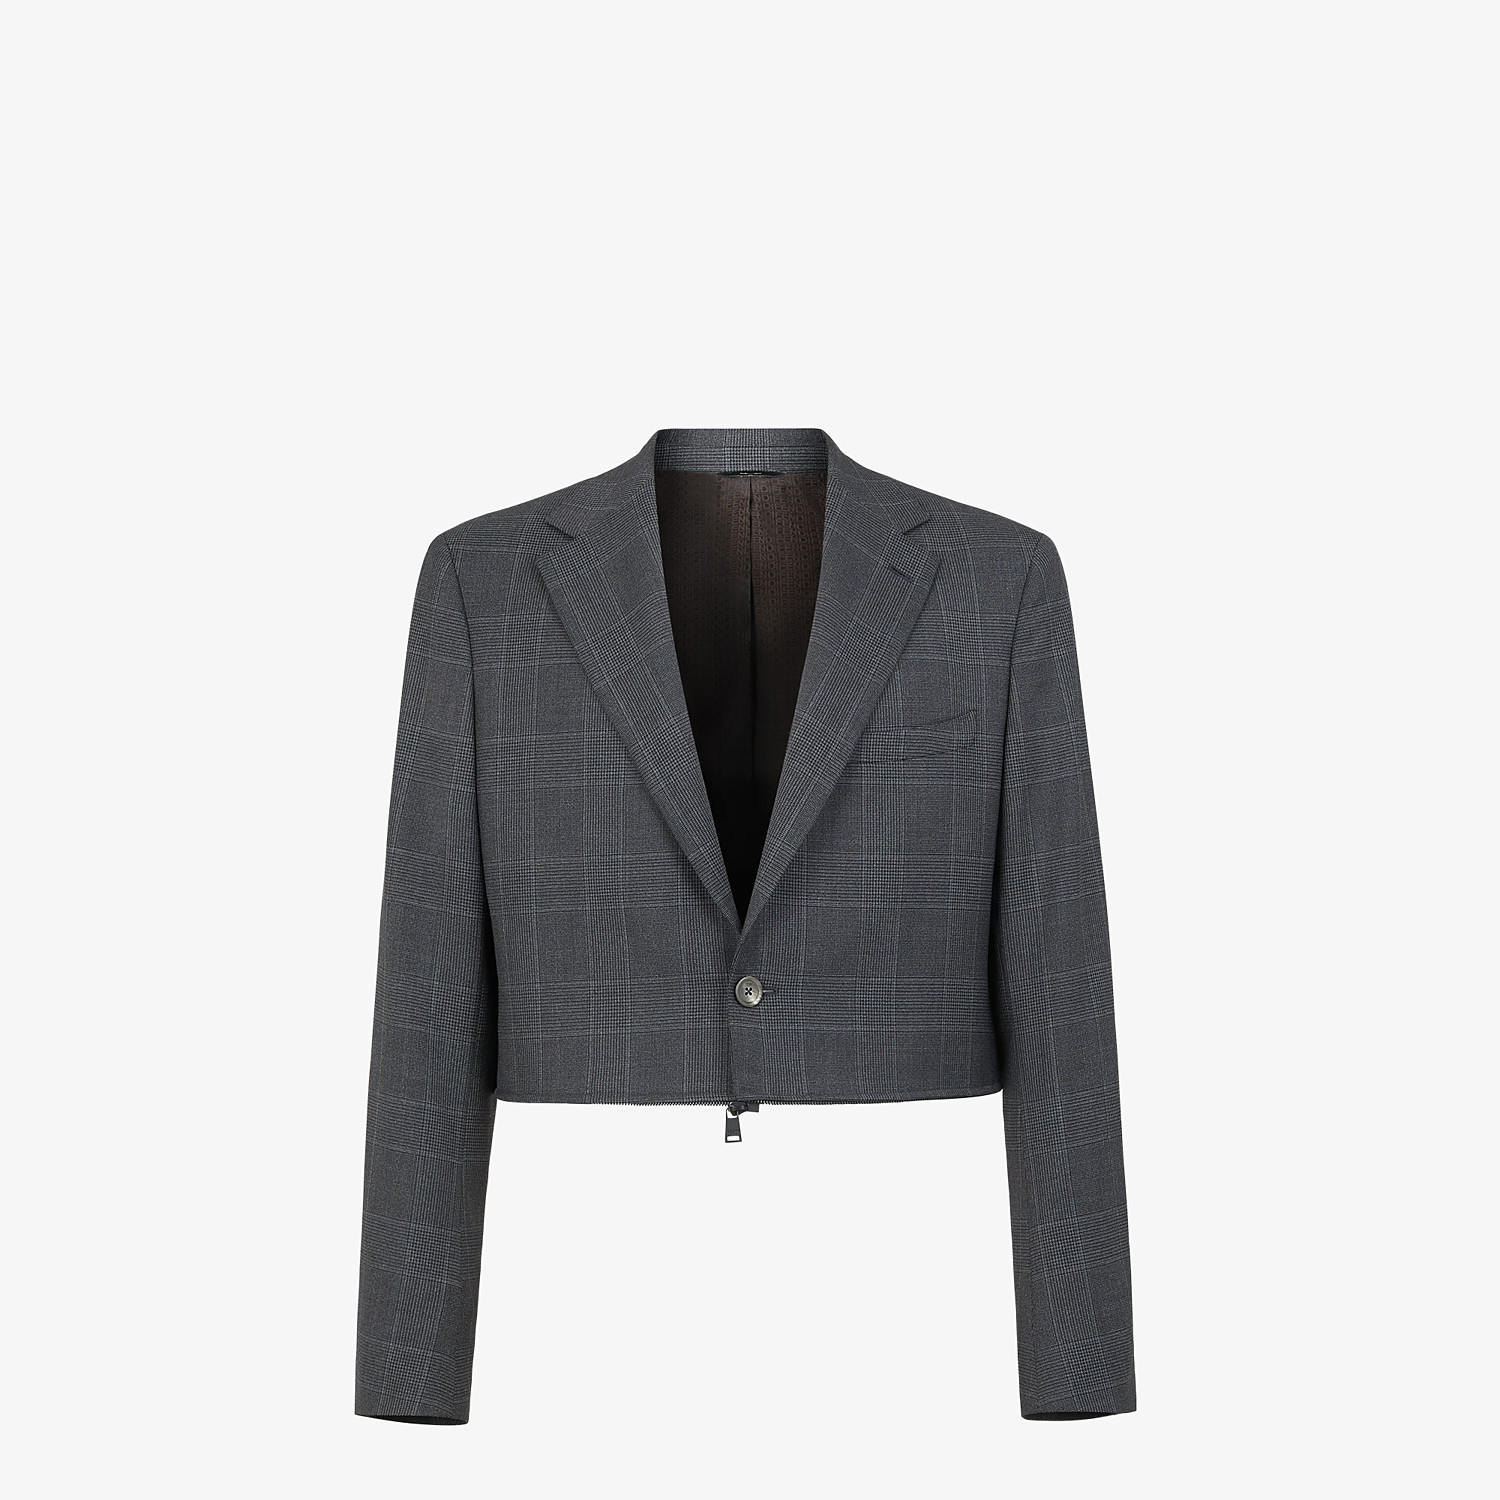 FENDI JACKET - Multicolour Prince of Wales check blazer - view 6 detail